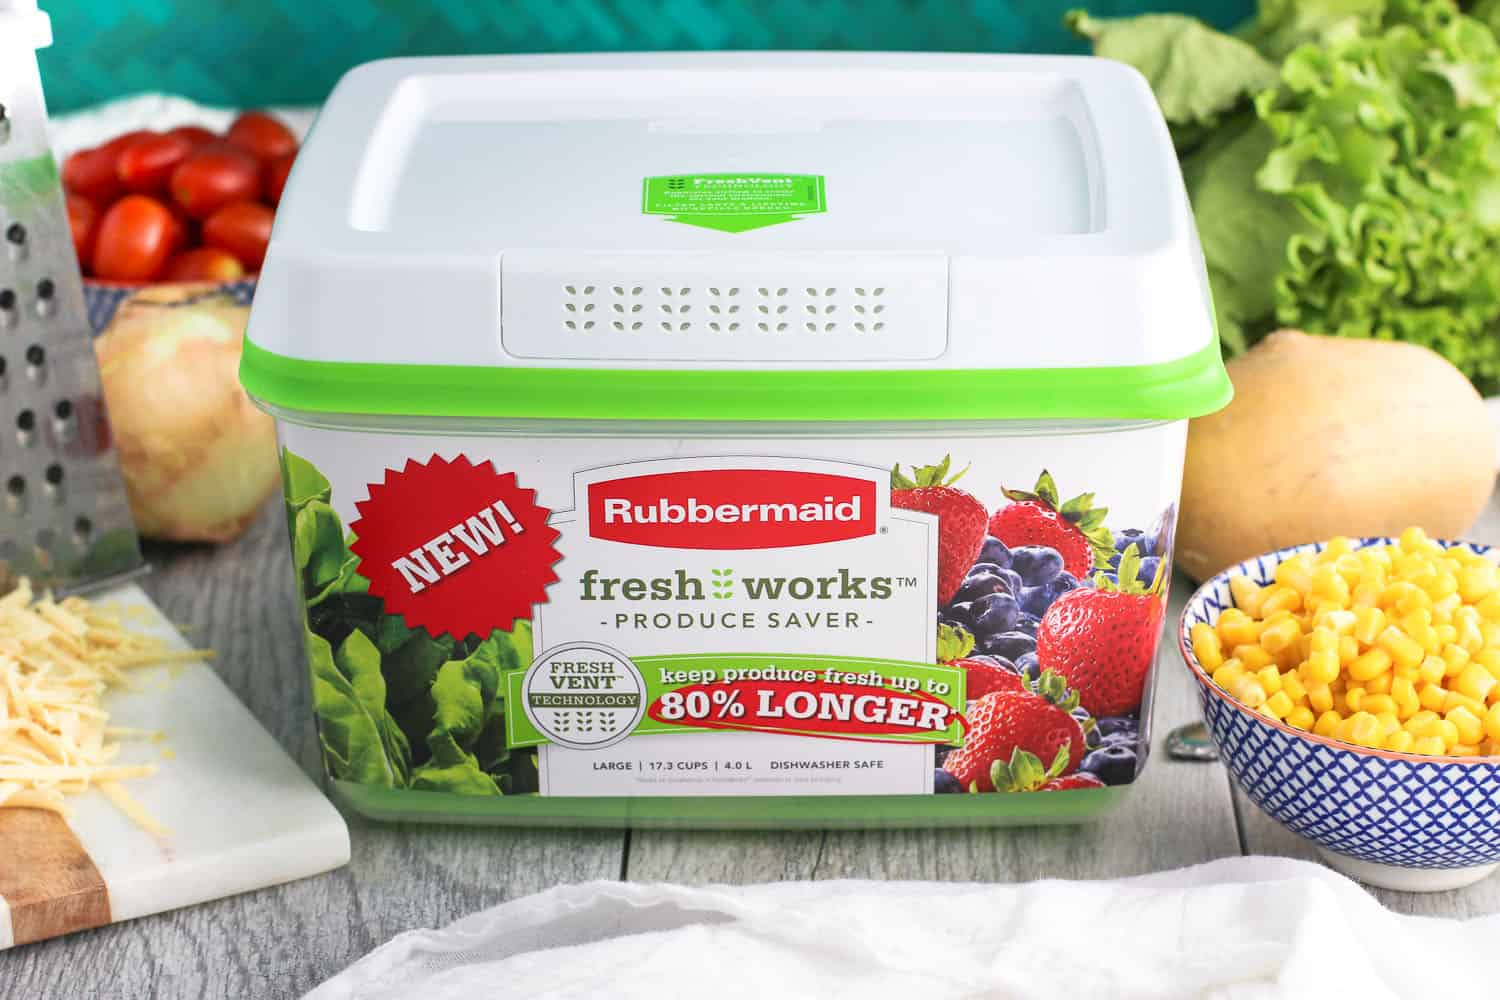 A new Rubbermaid fresh works produce saver surrounded by salad ingredients.